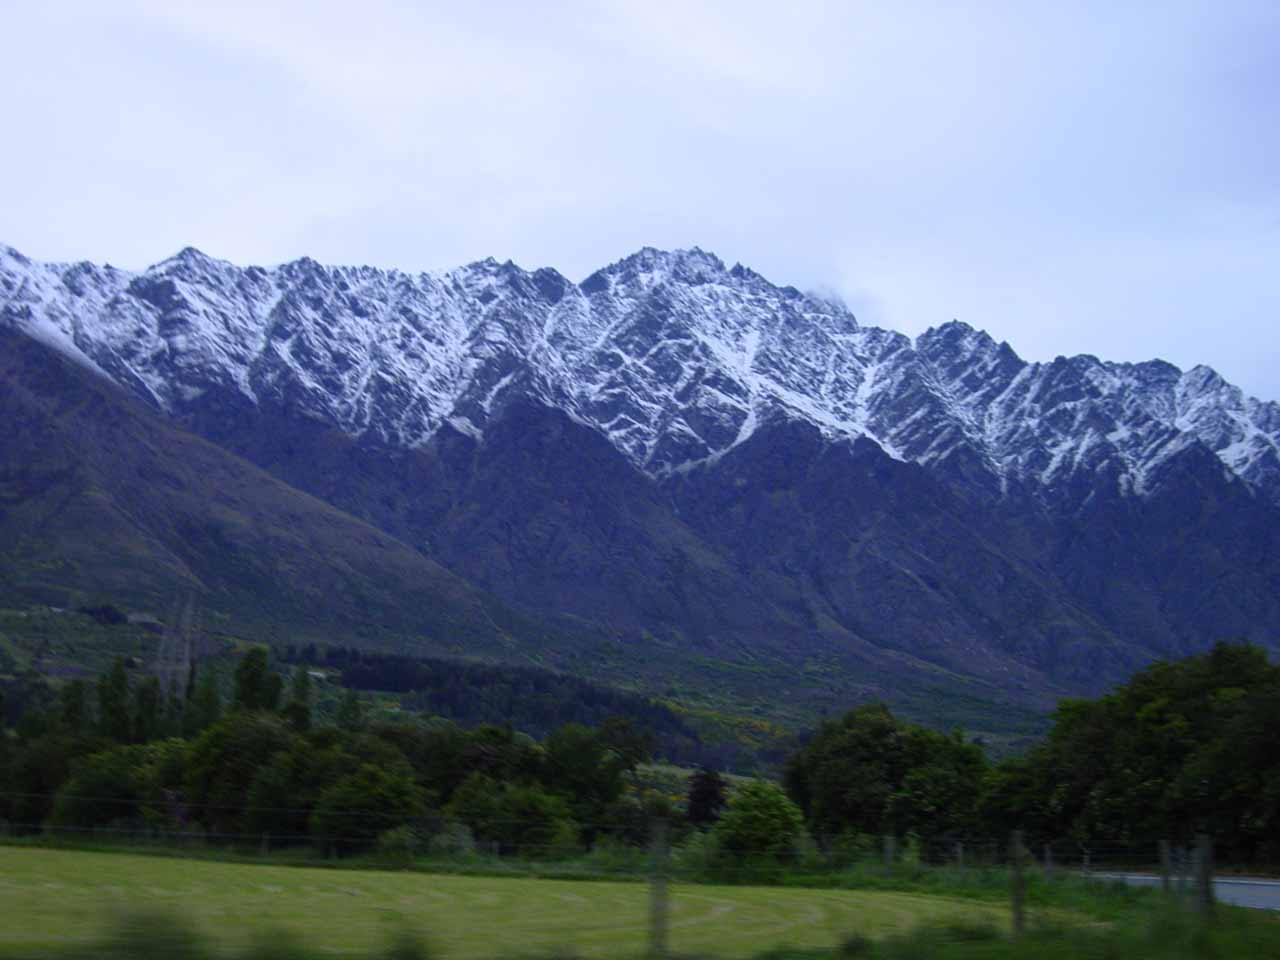 Looking towards the Remarkables while driving out of Queenstown